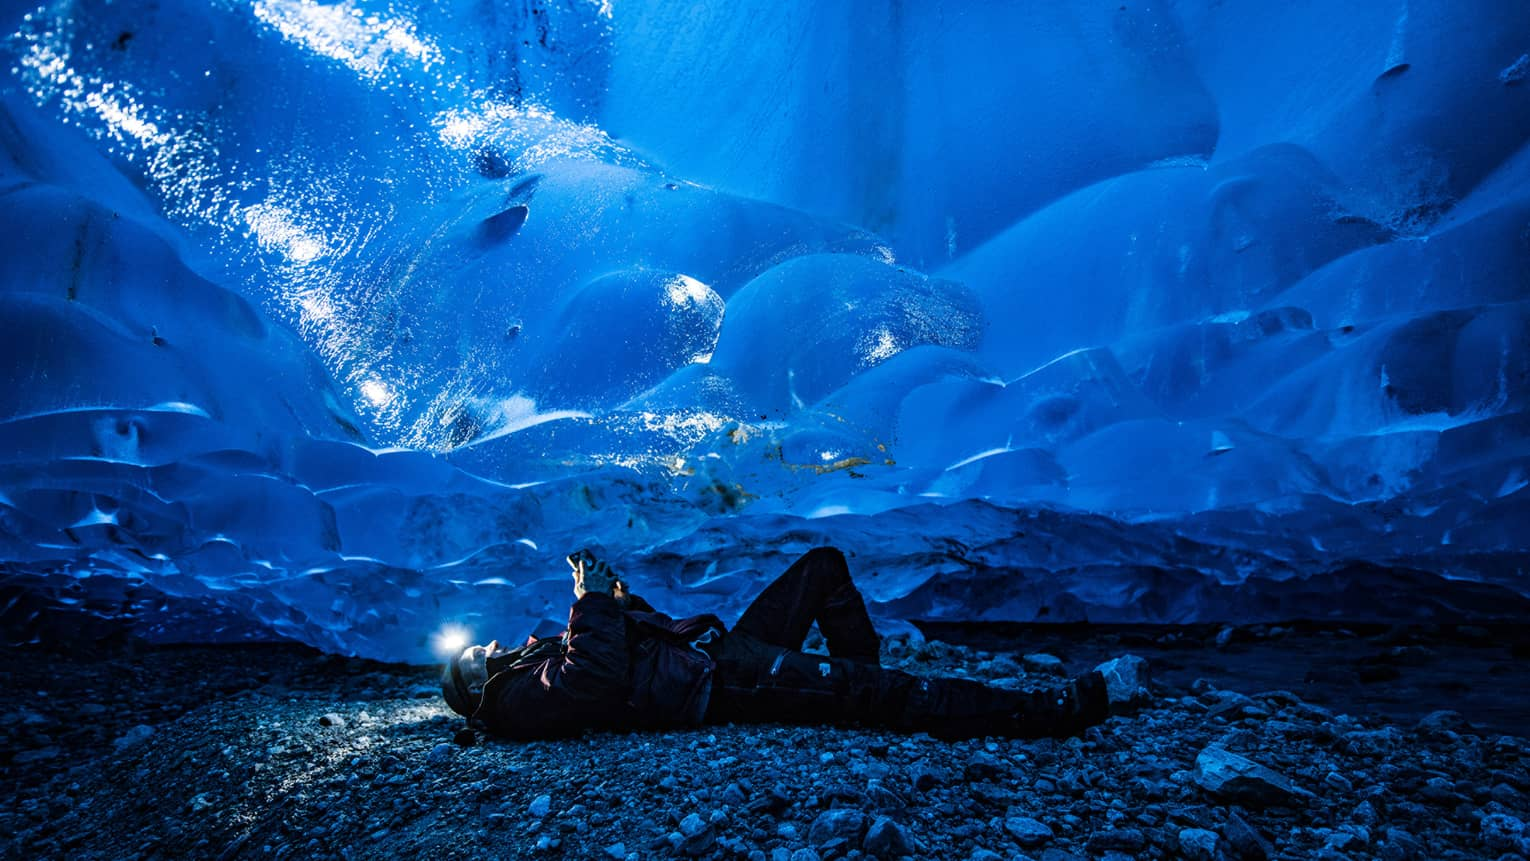 Man lies on back on rocky ground, headlamp shines up on thick ice cap with blue hues